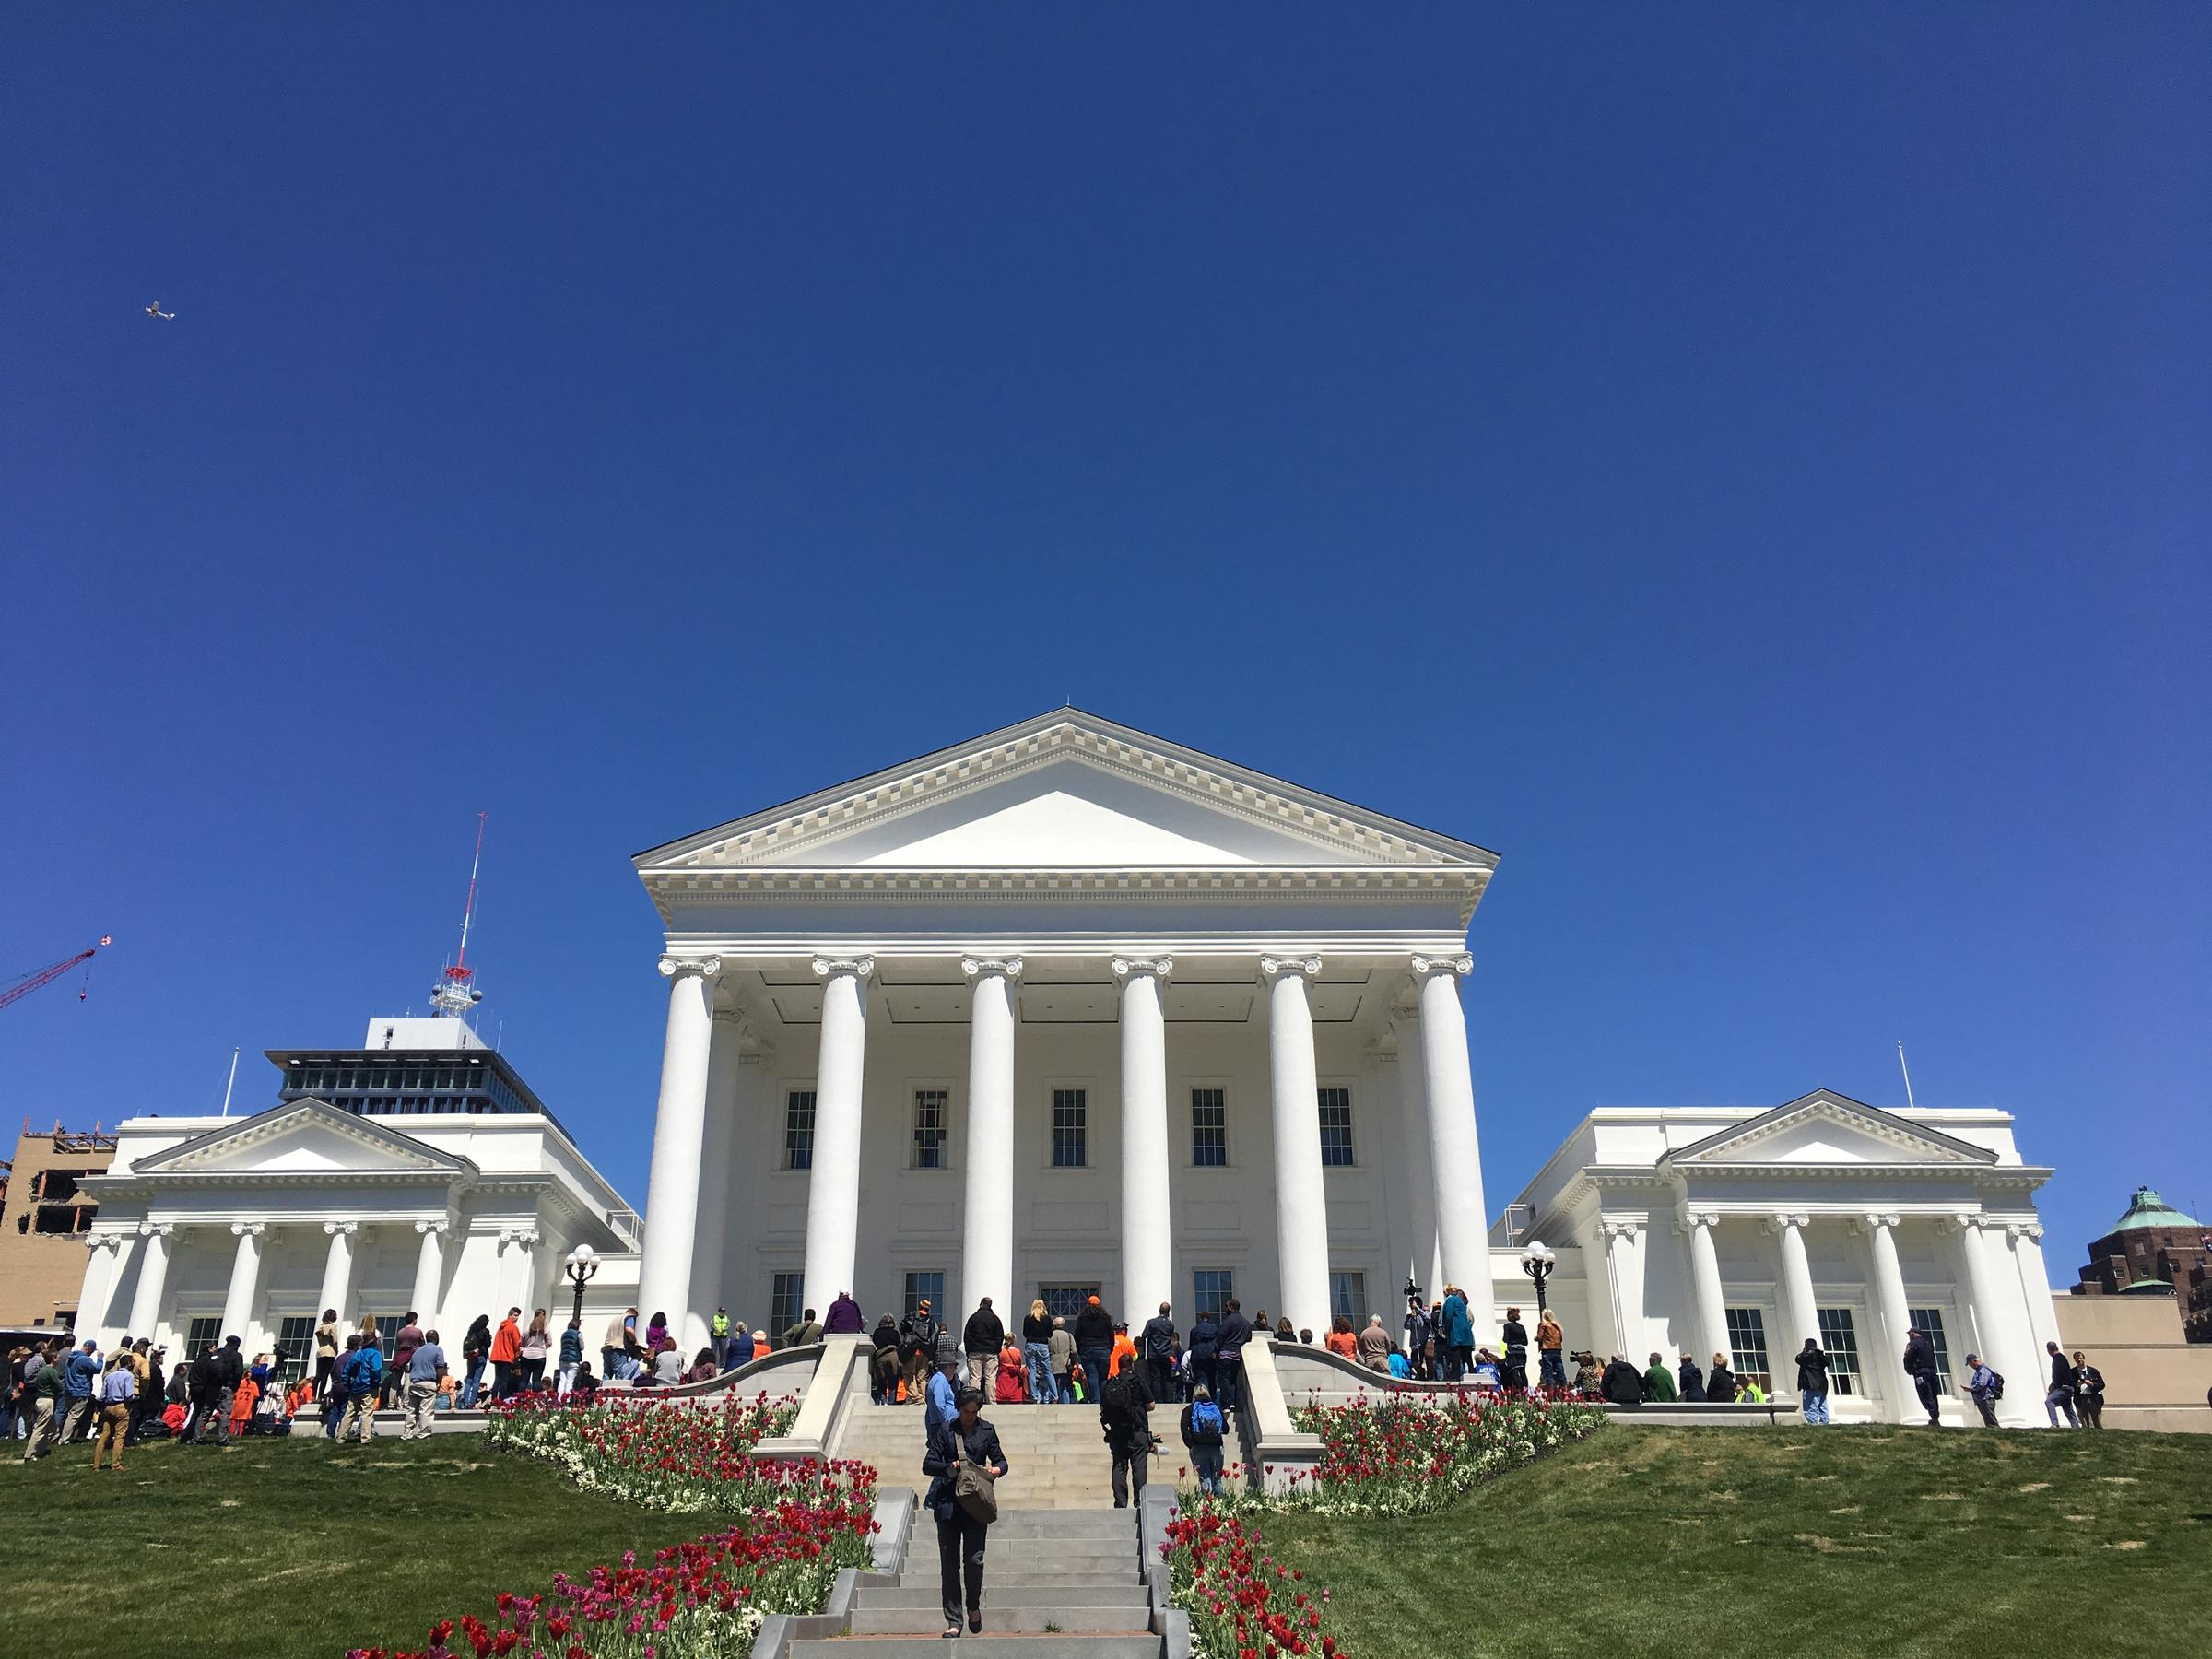 National School Walkout: Students march from Brown's Island to Va. State Capitol